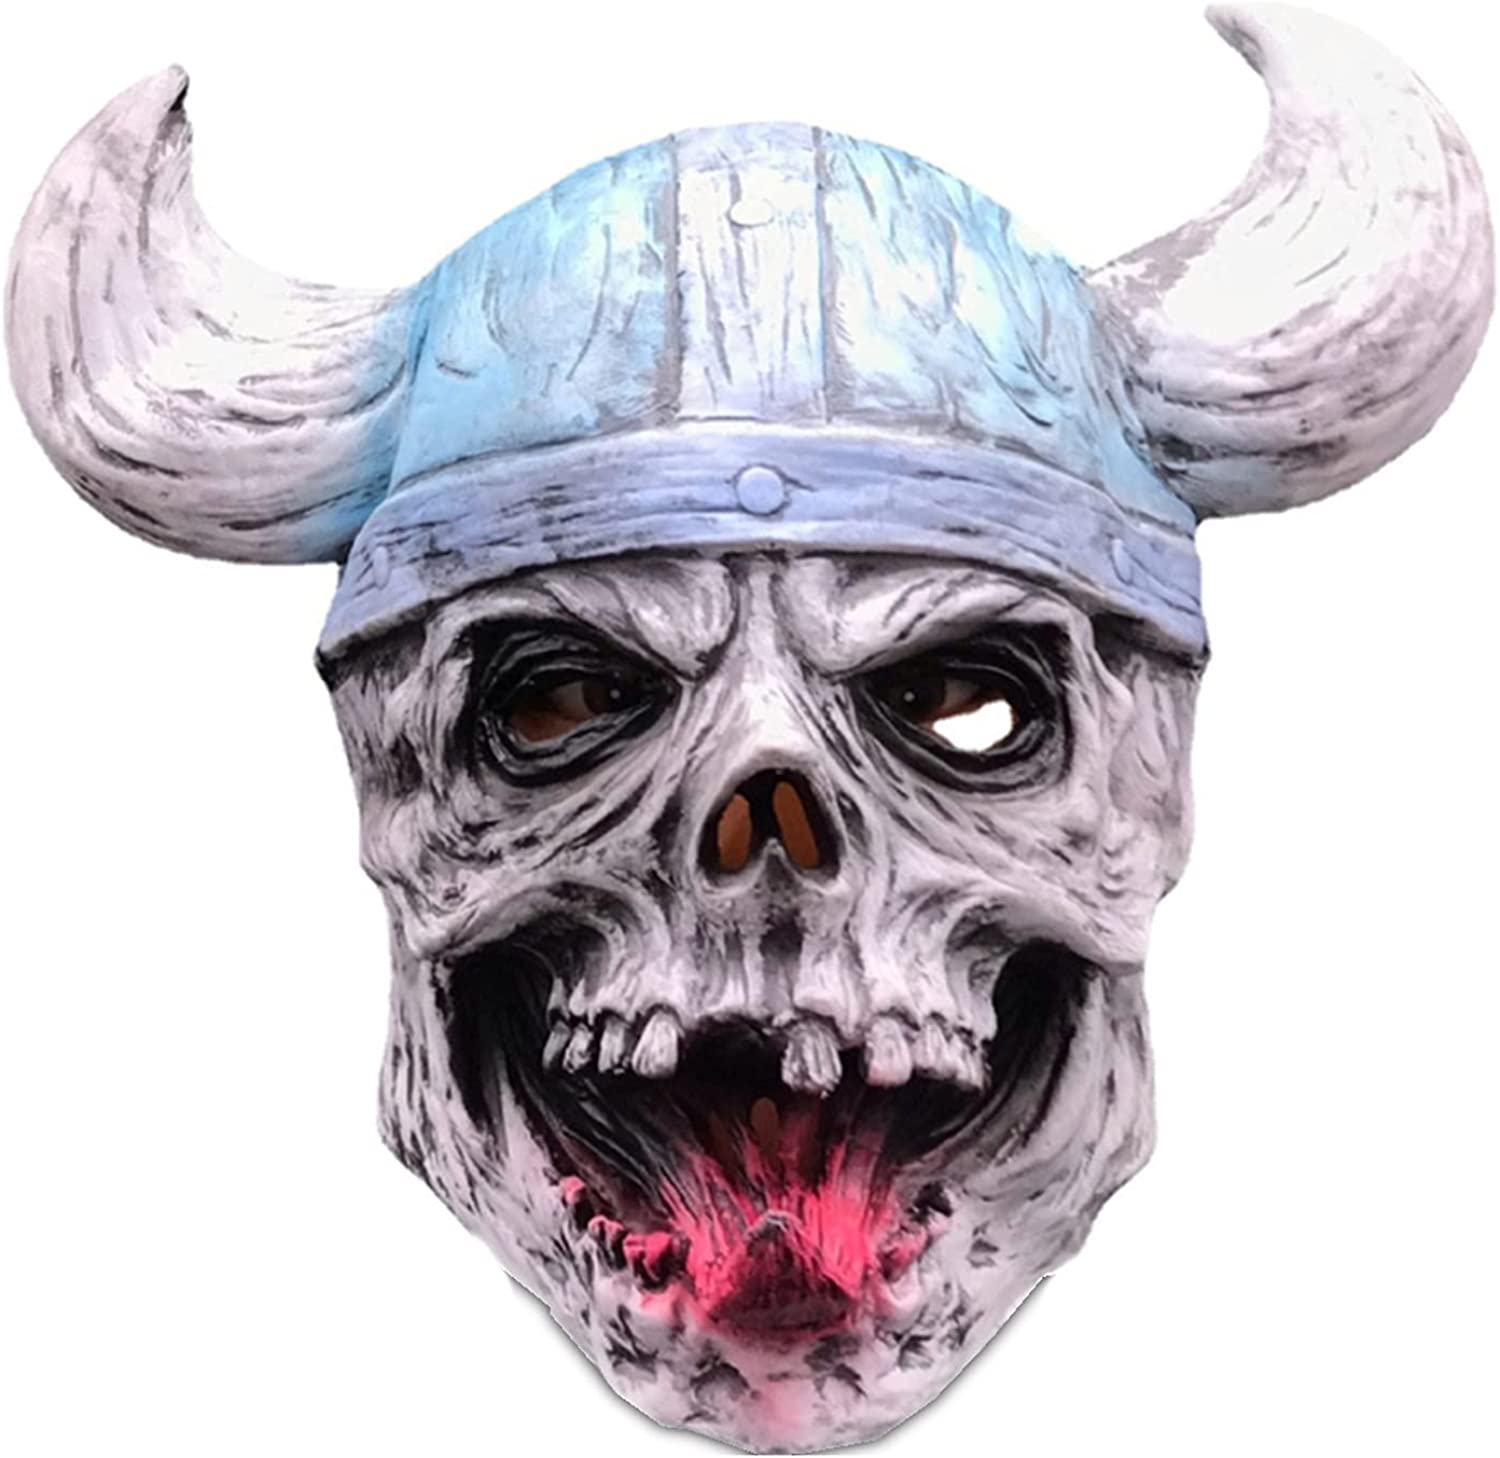 OFFicial shop Halloween Latex Skull Pirate Mask Costume Corsair O Under blast sales Scary